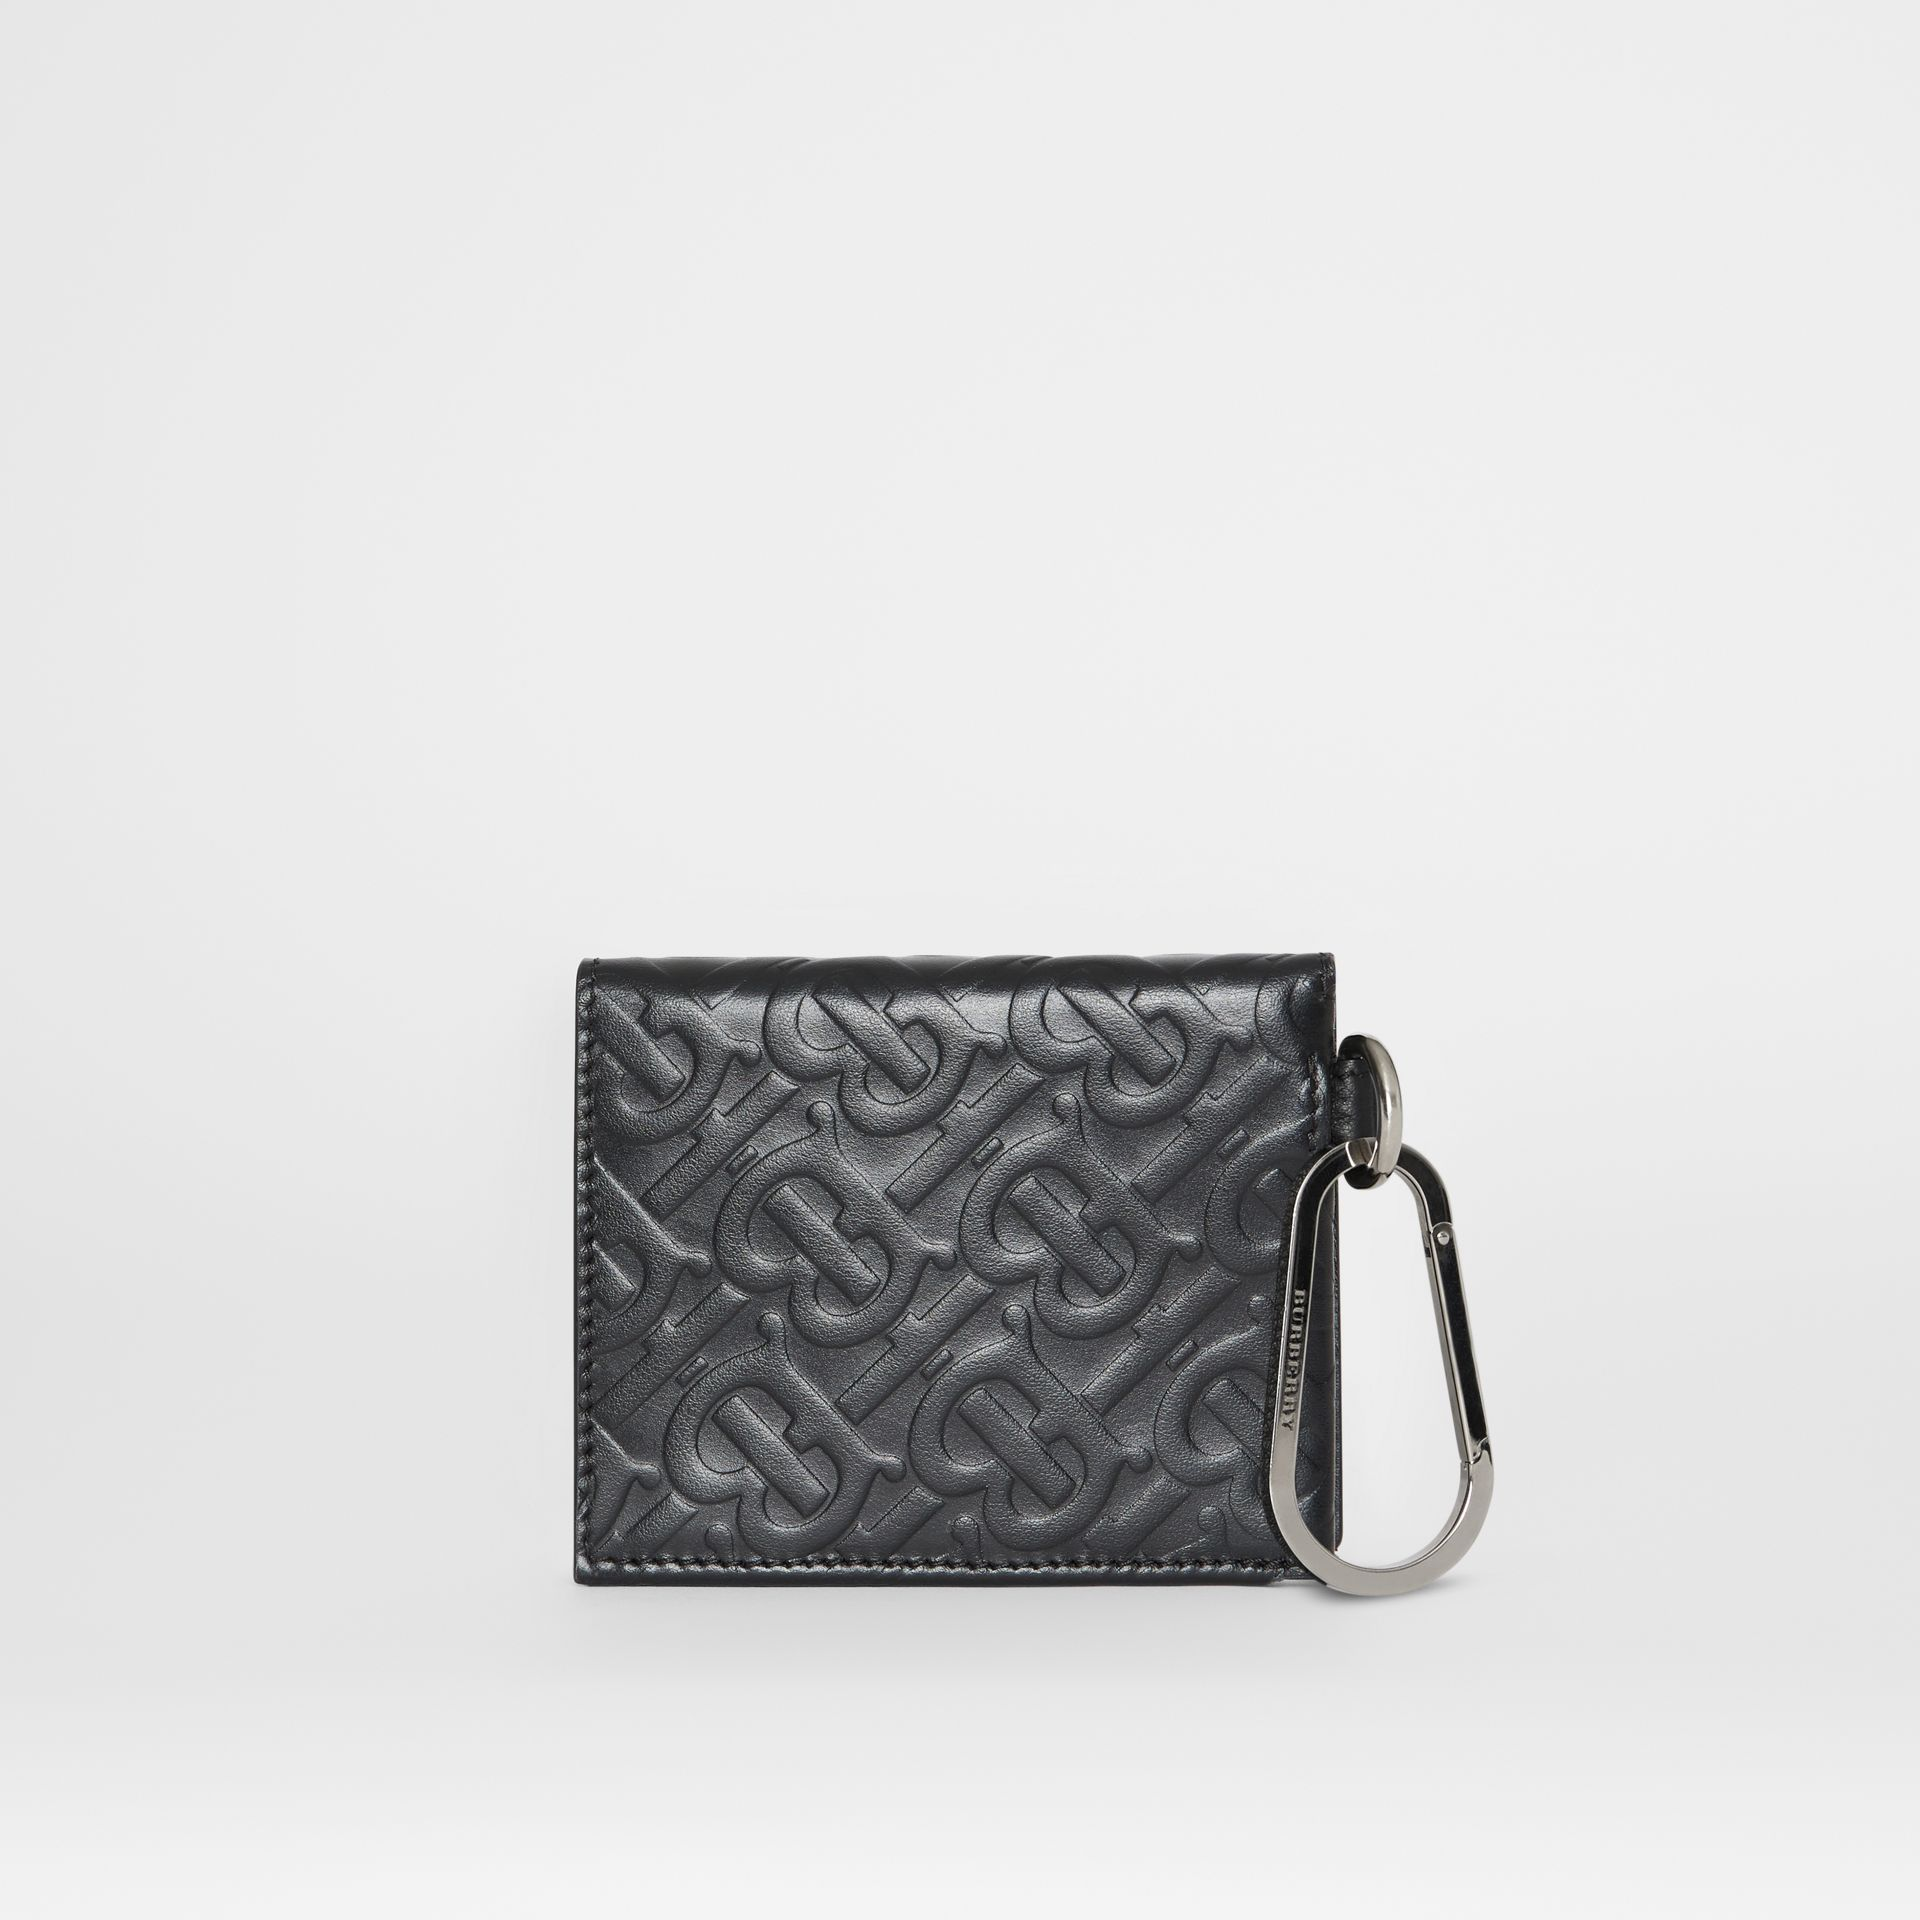 Monogram Embossed Leather Trifold Wallet in Black | Burberry - gallery image 4